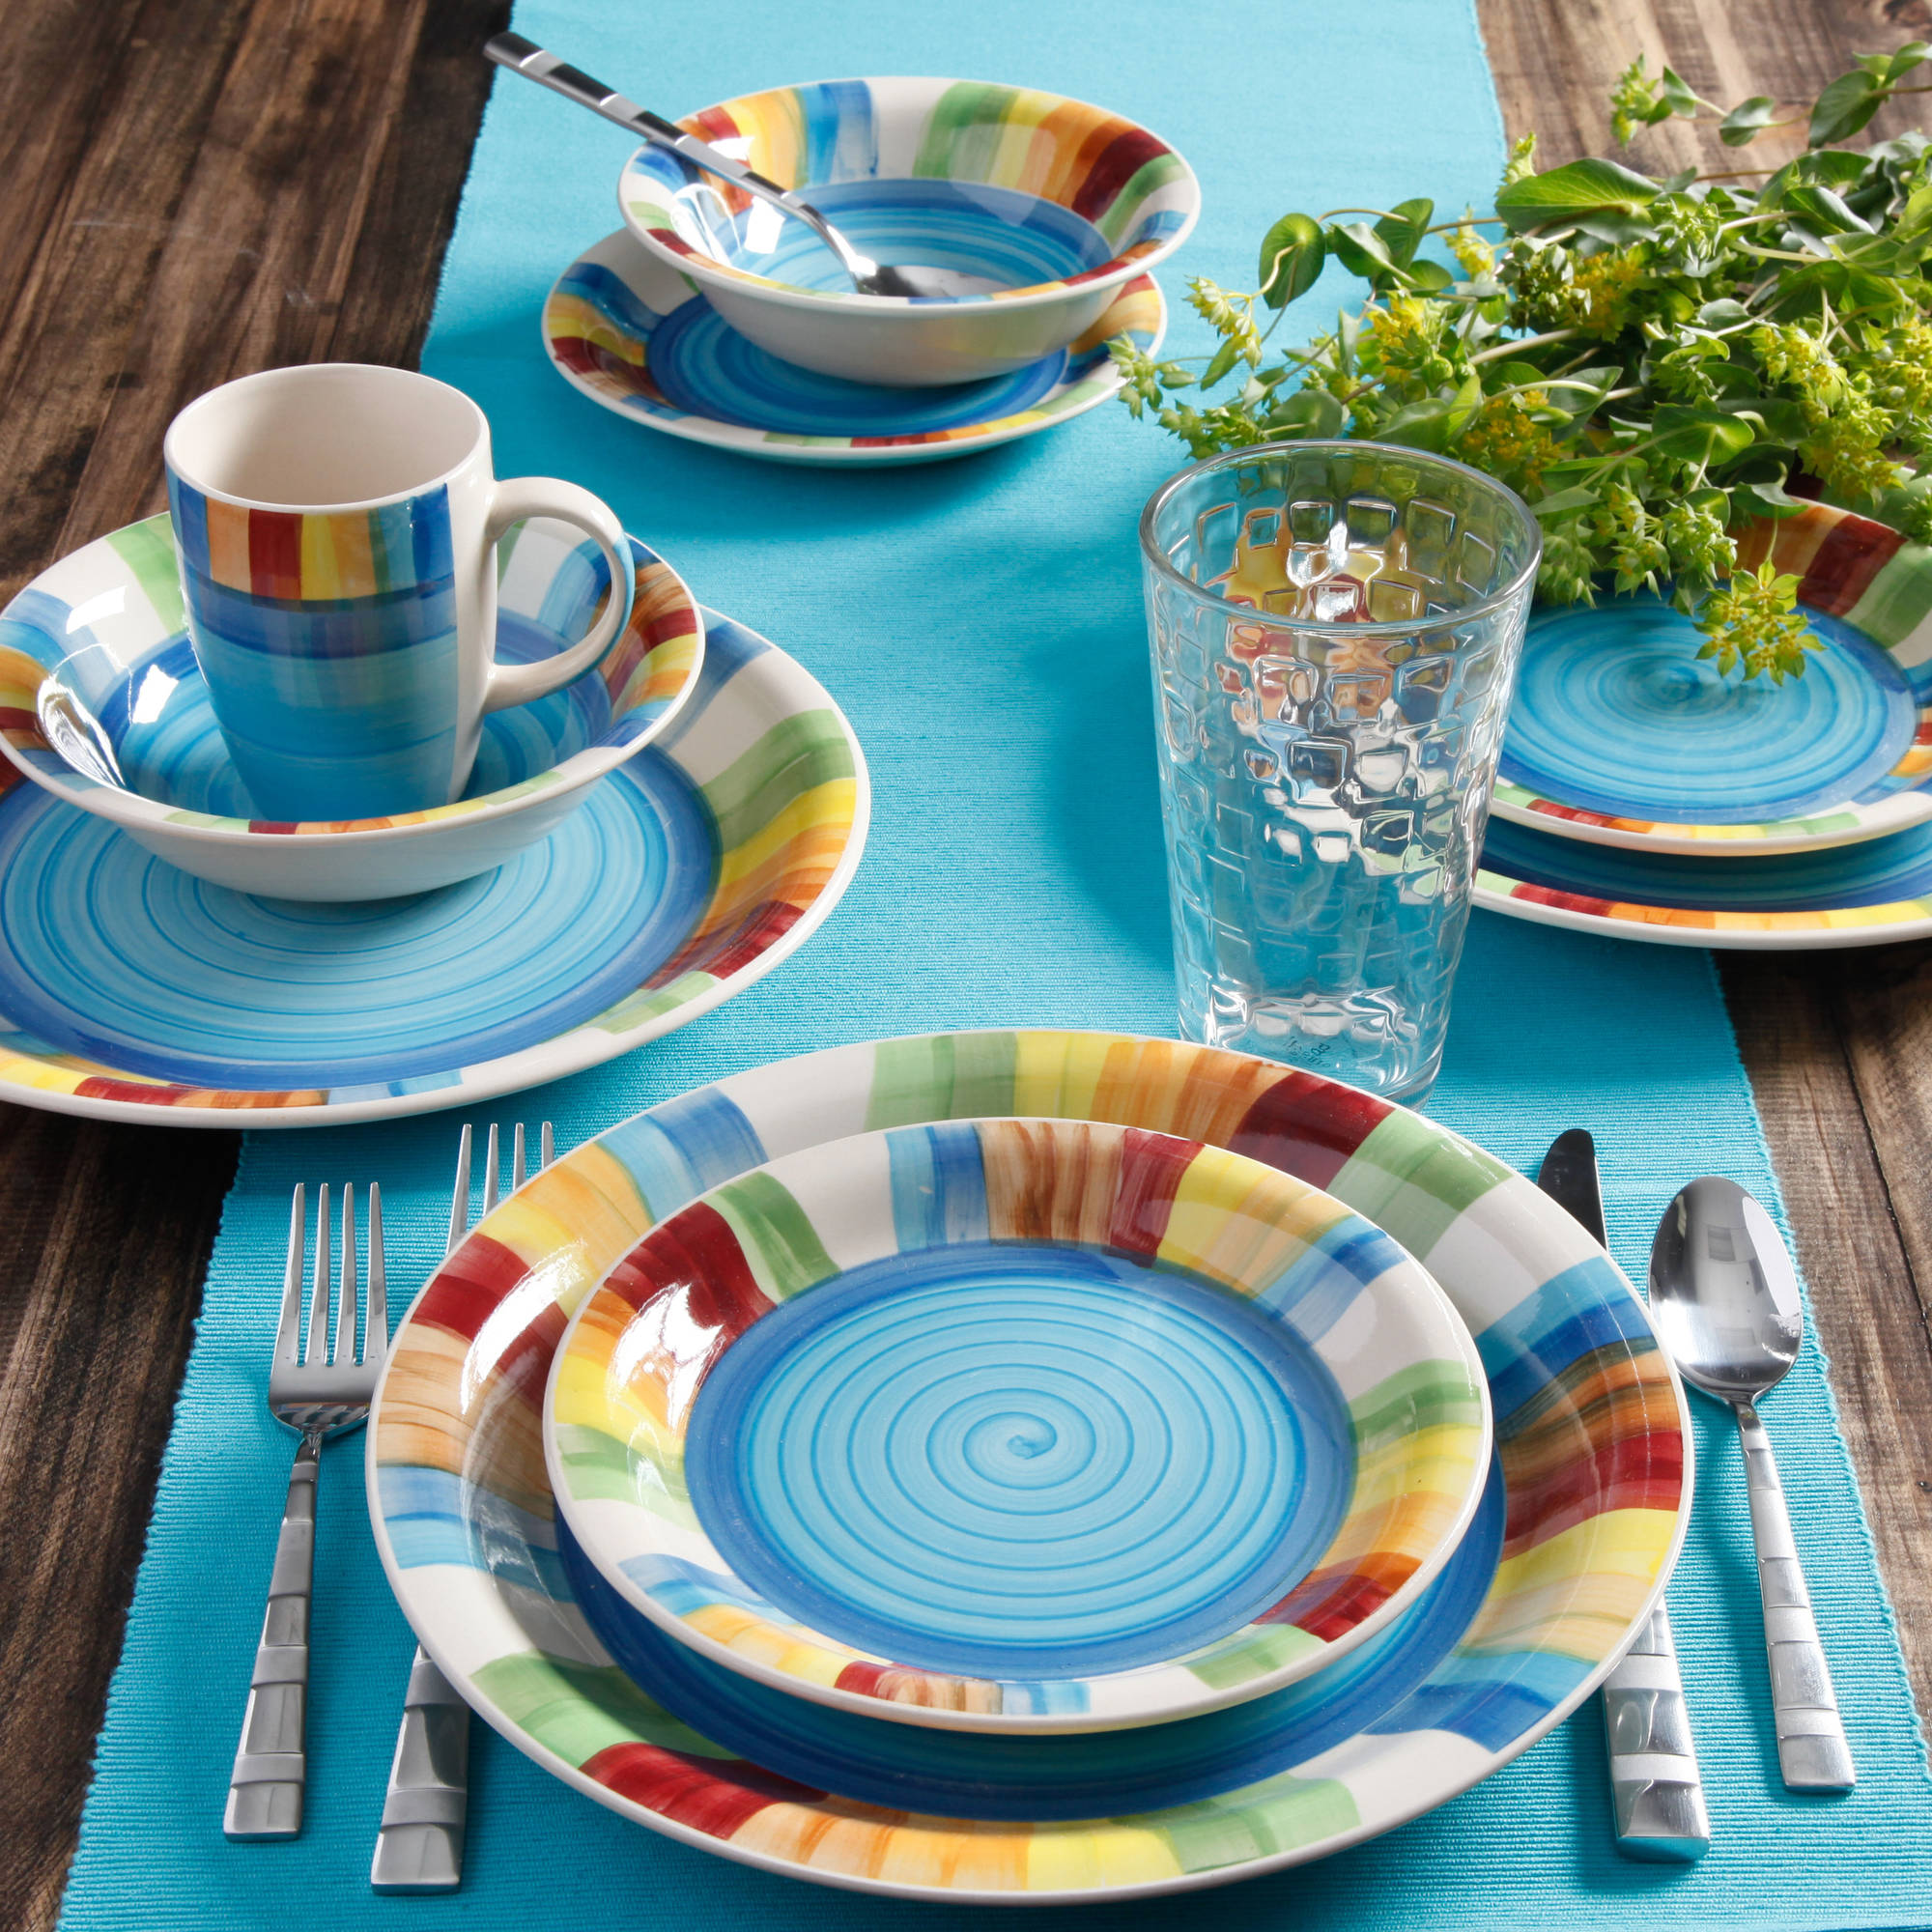 Gibson Carmelita Stripes 16 Piece Dinnerware Set   Walmart.com